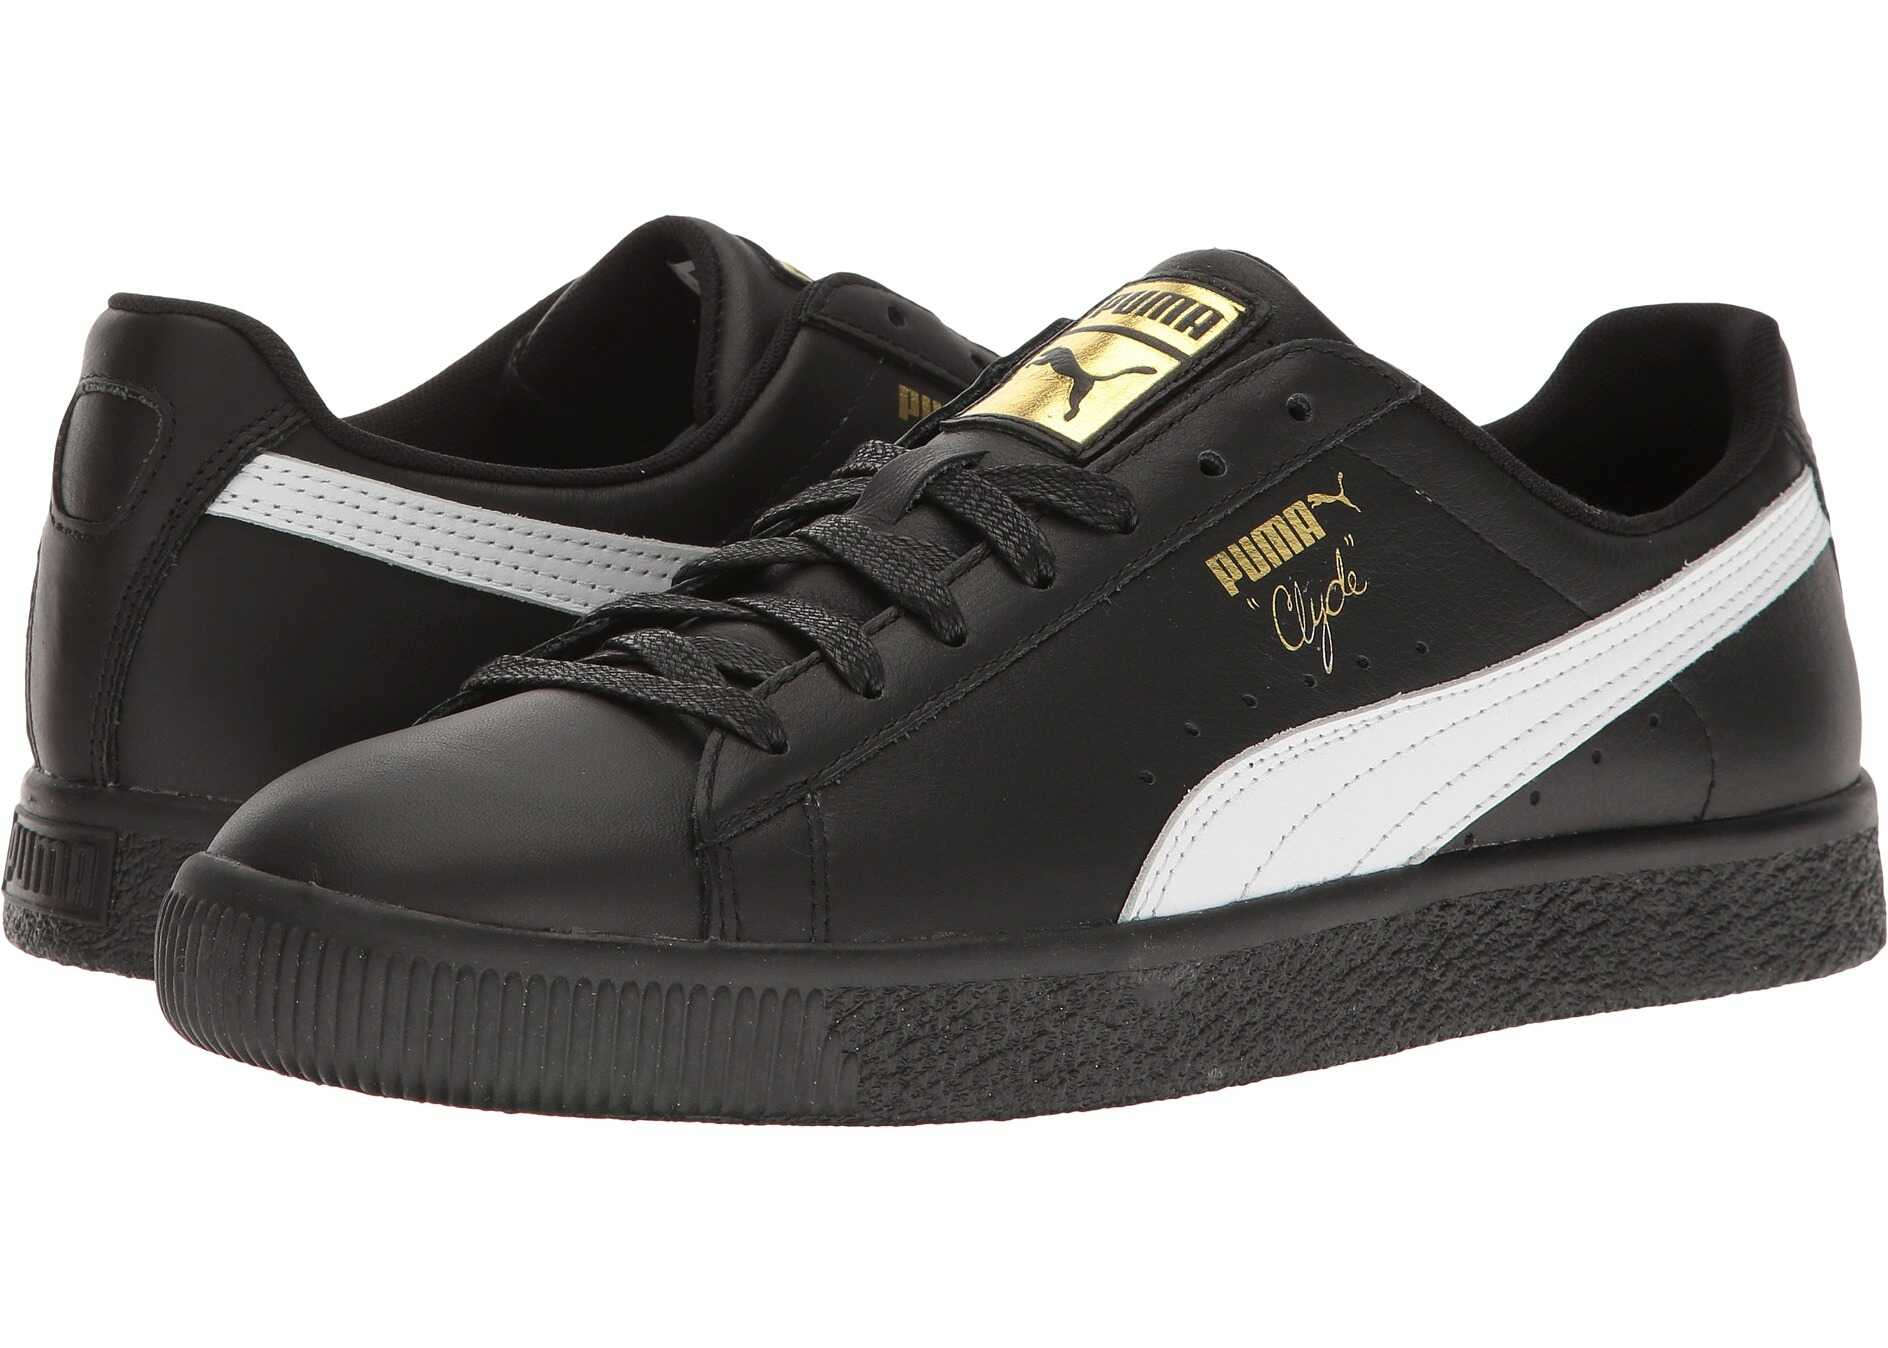 PUMA Clyde Core L Foil Black/White/Gold